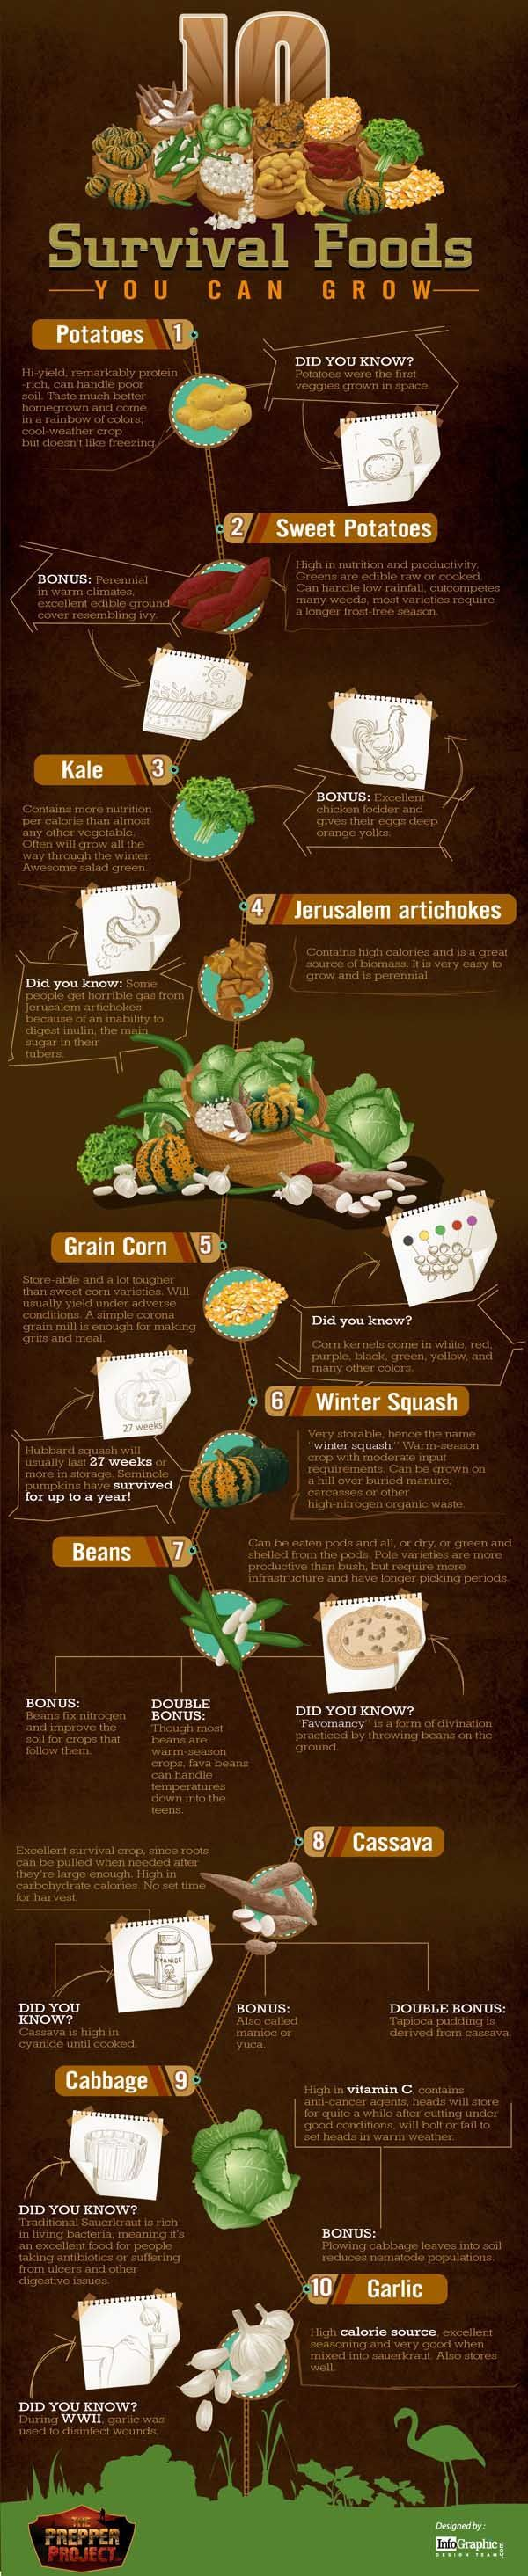 10 Survival Foods You Need to be Growing